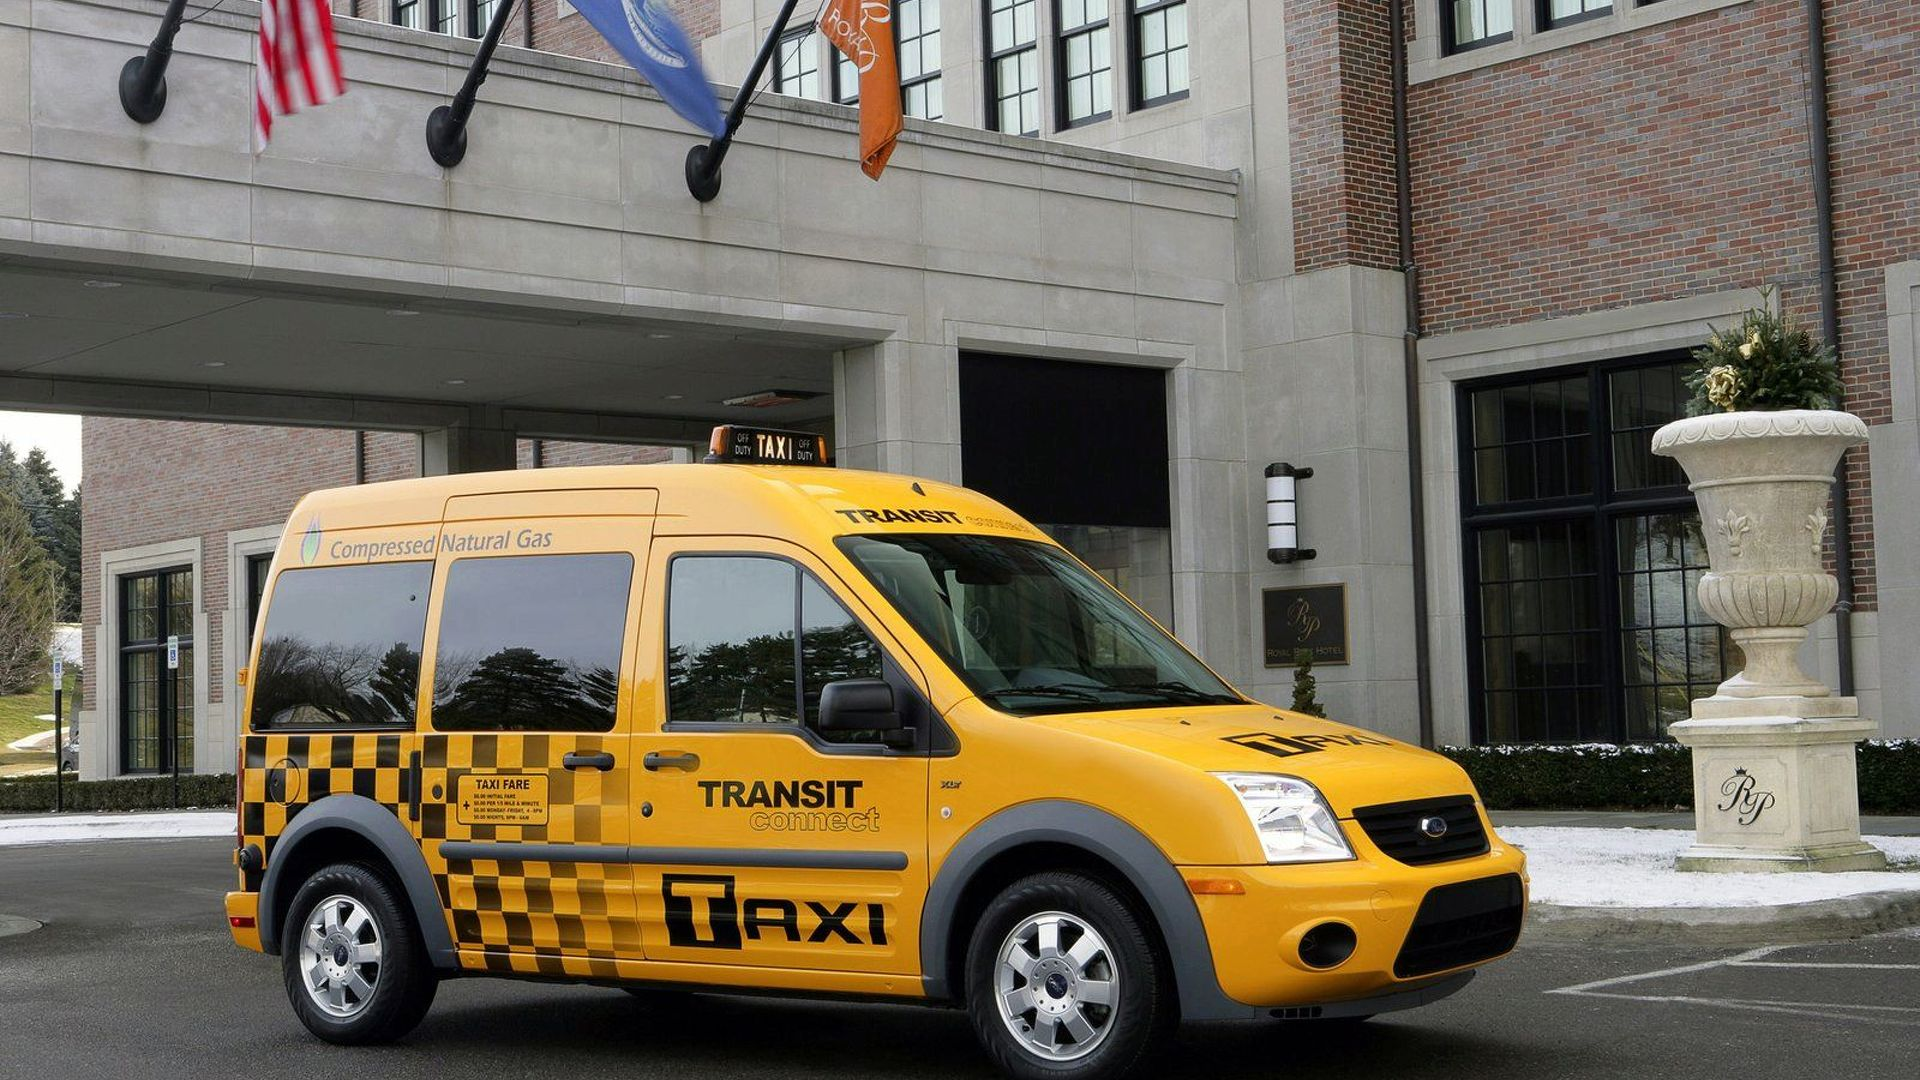 2011 Ford Transit Connect Taxi - America's New Yellow Cab